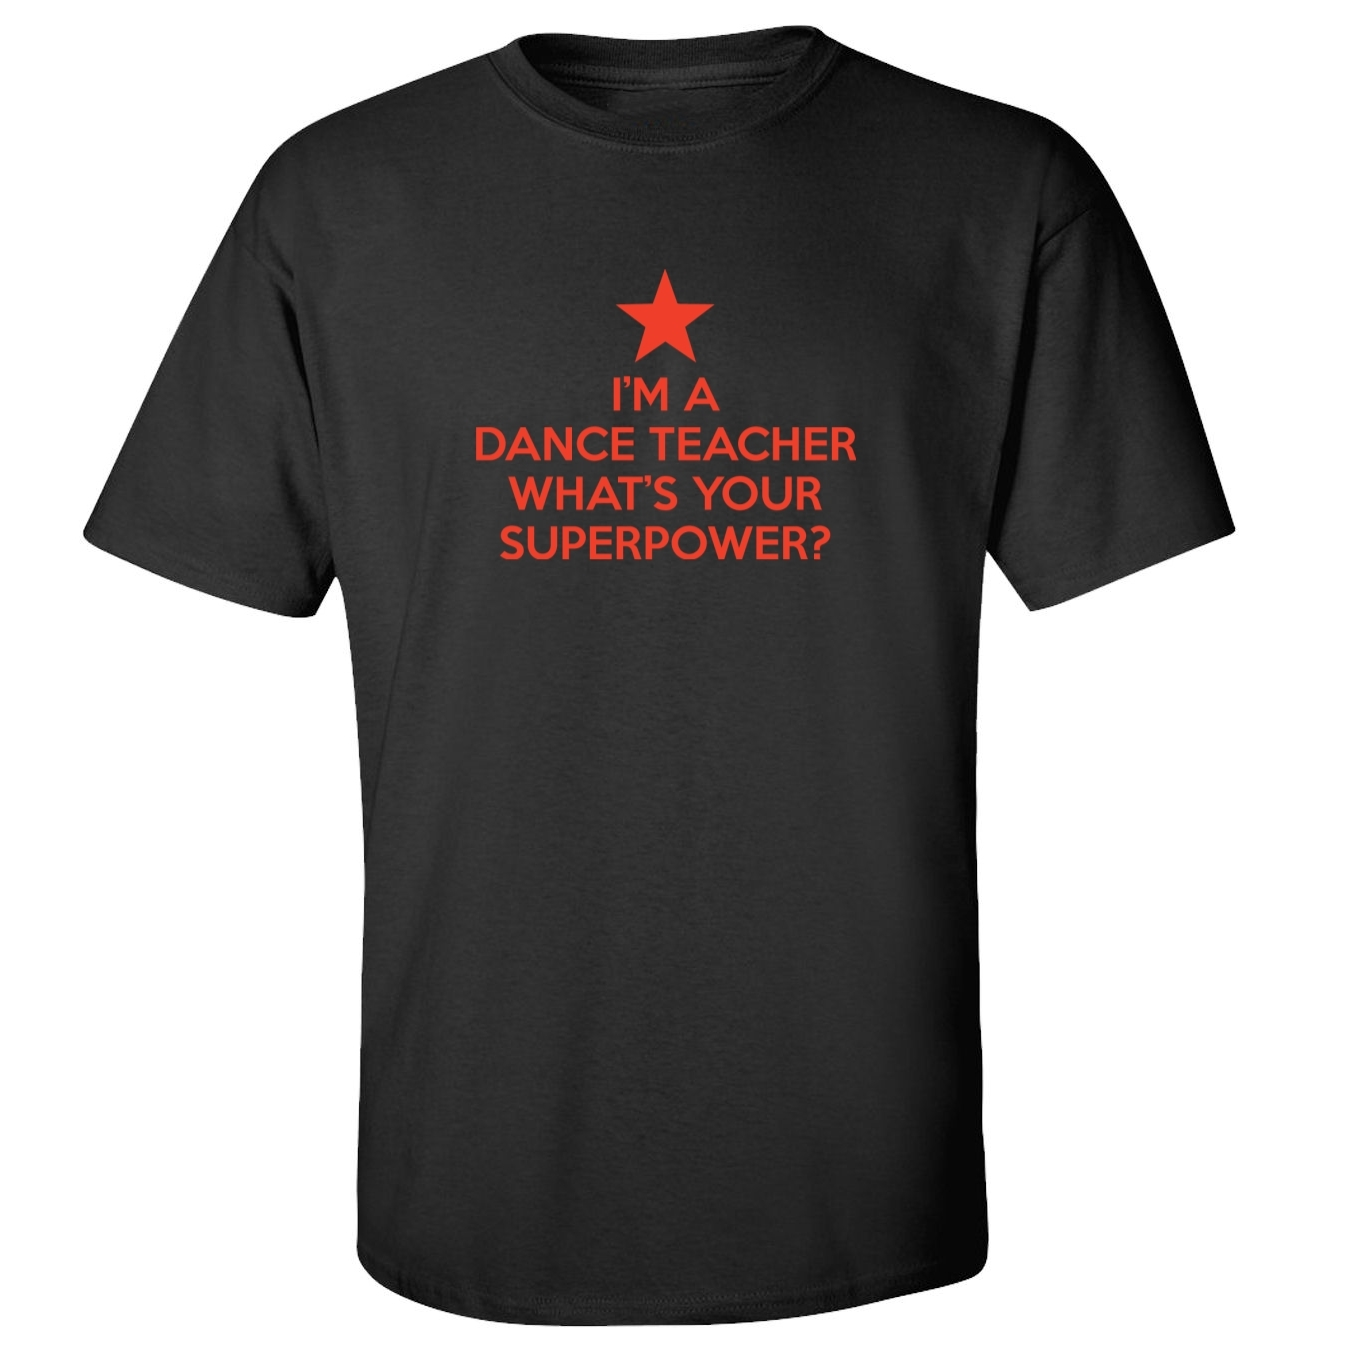 Mashed Clothing I'm Dance Teacher Your Superpower? Adult T-Shirt at Sears.com